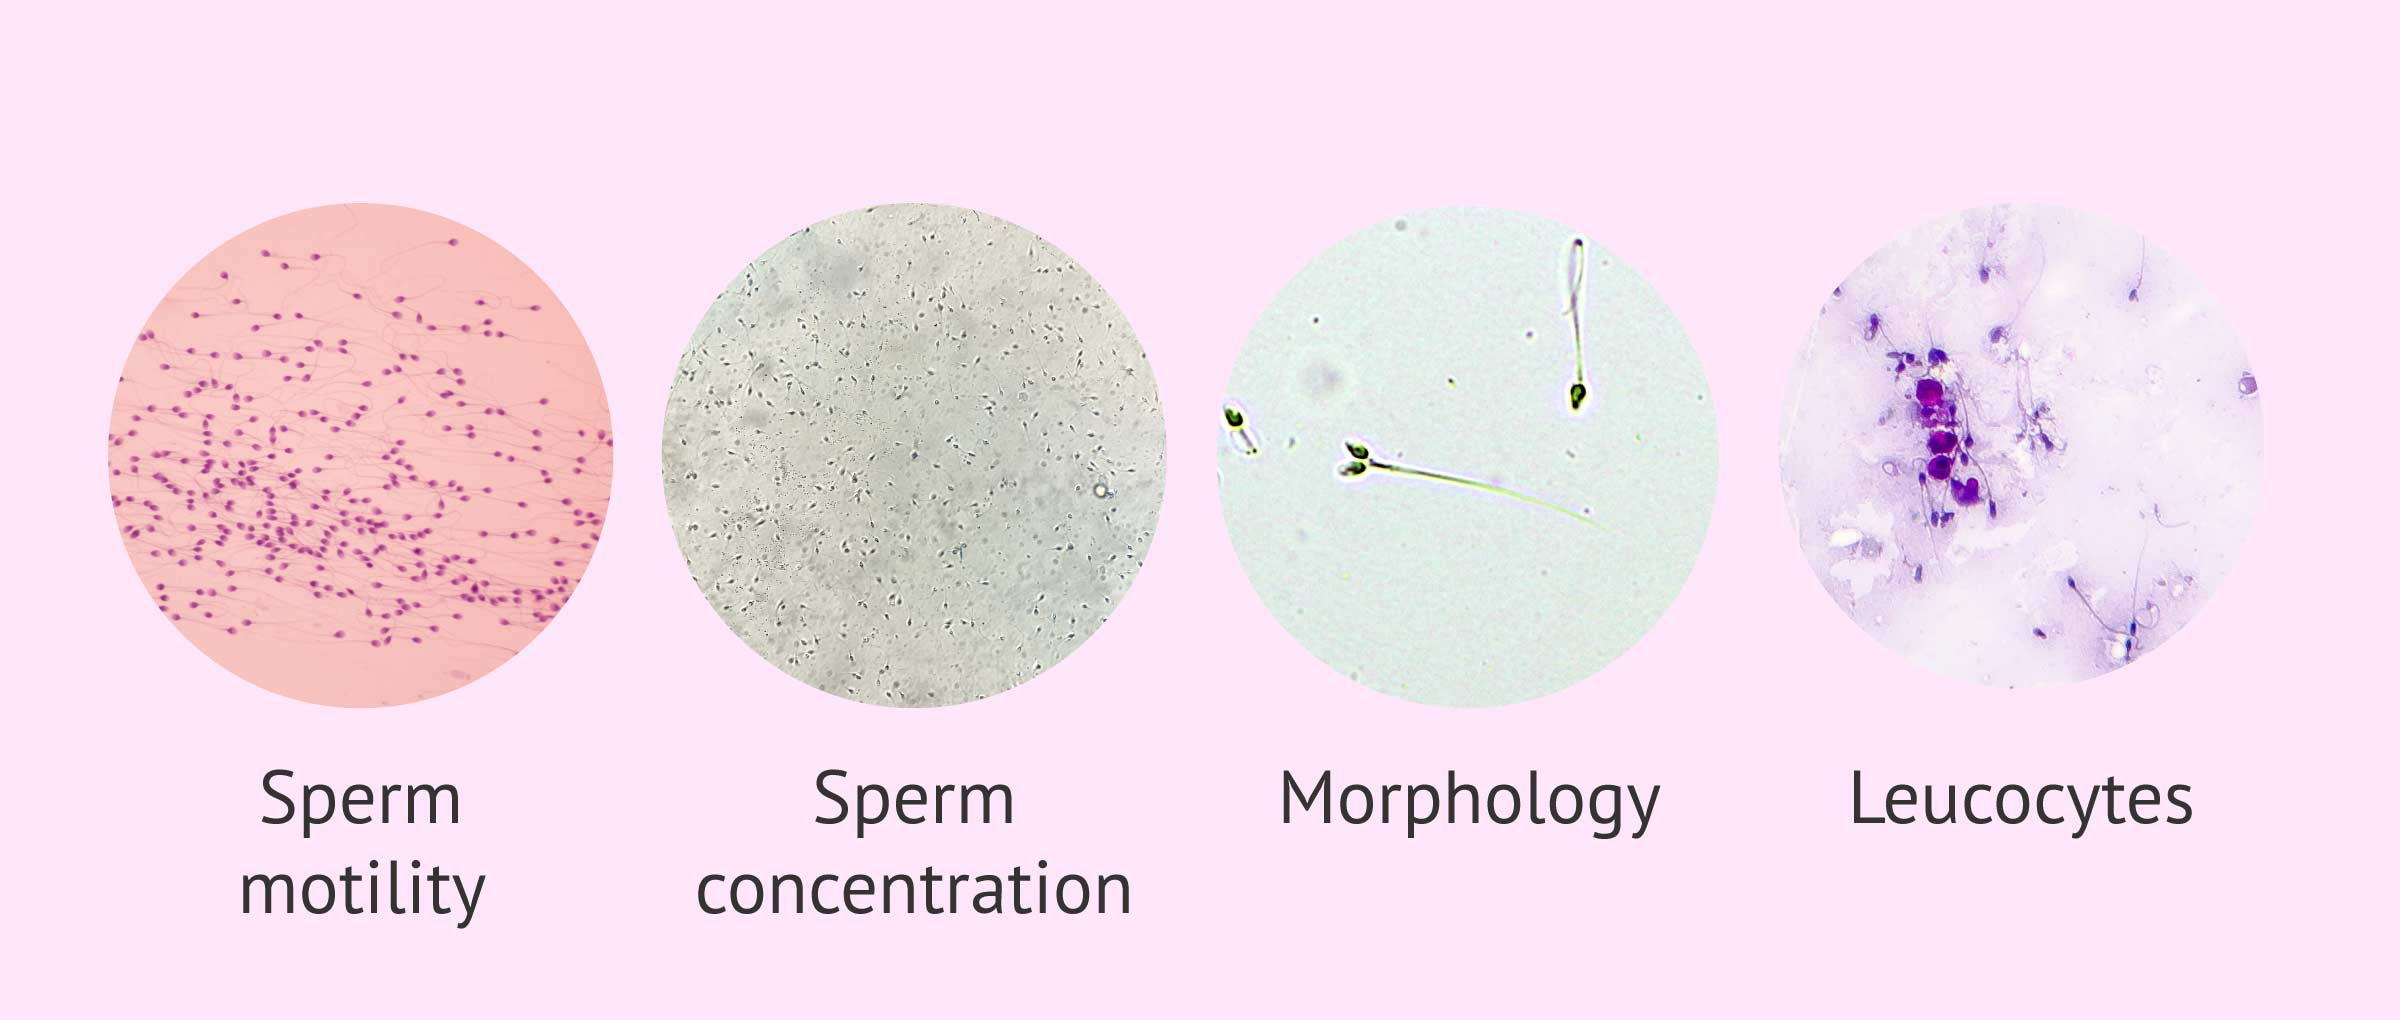 Microscopic parameters of a semen analysis